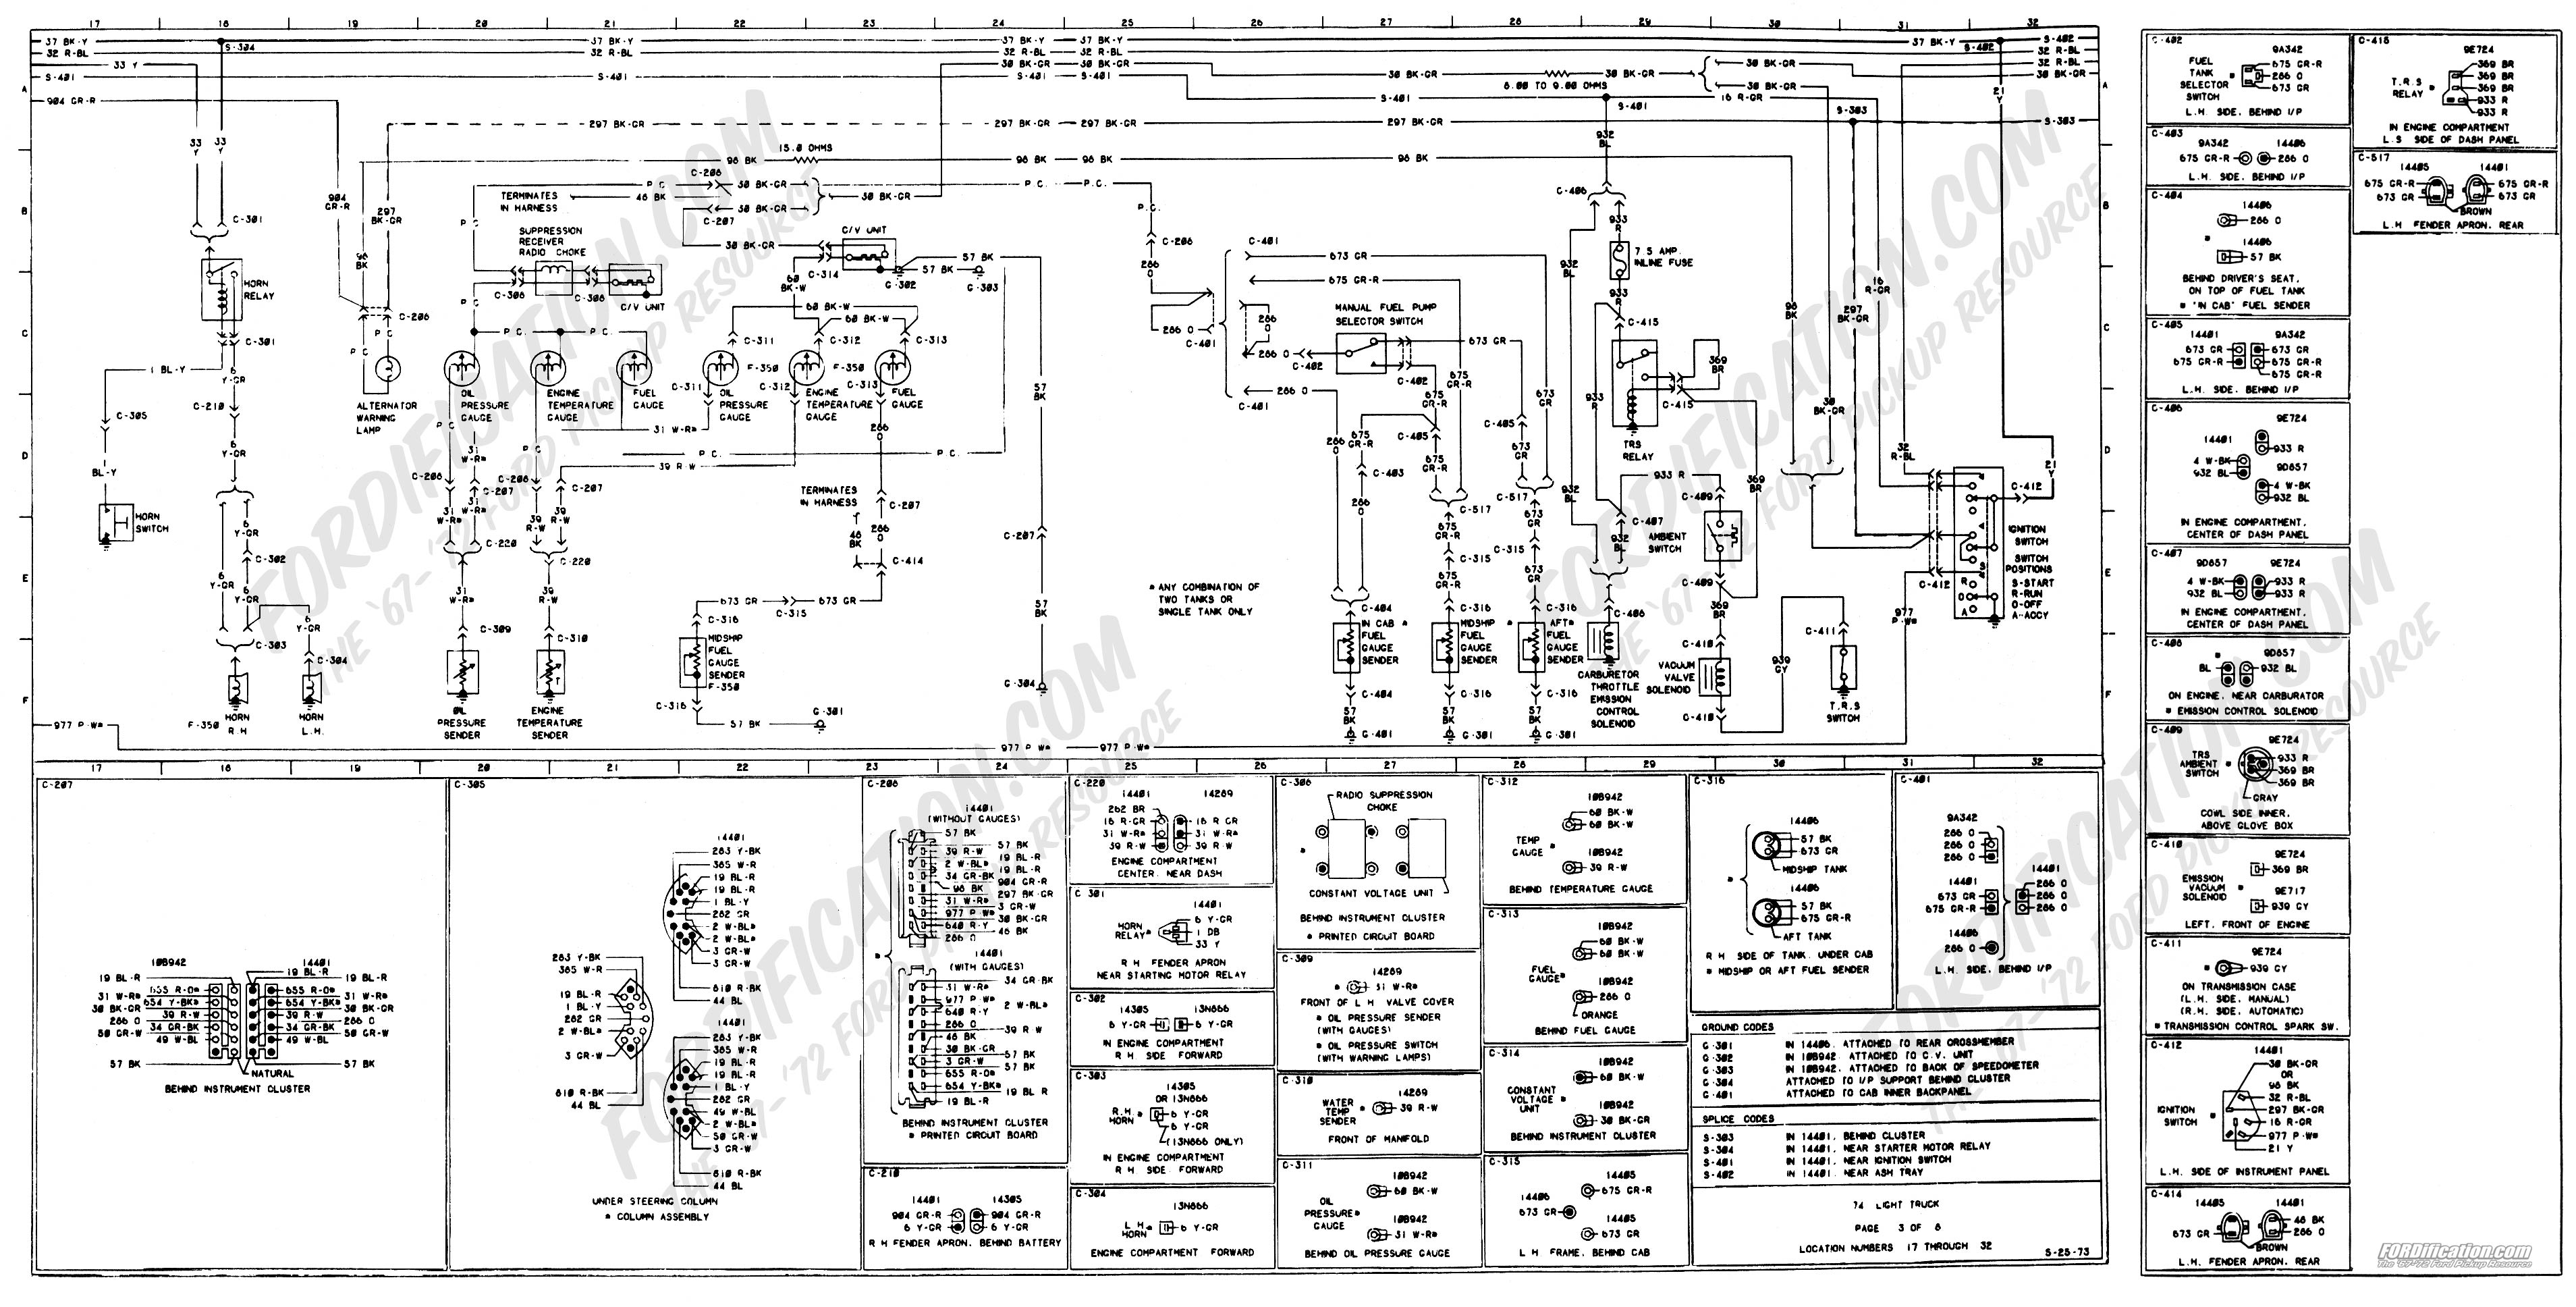 wiring_74master_3of8 1973 1979 ford truck wiring diagrams & schematics fordification net wiring diagram 2015 f350 at suagrazia.org